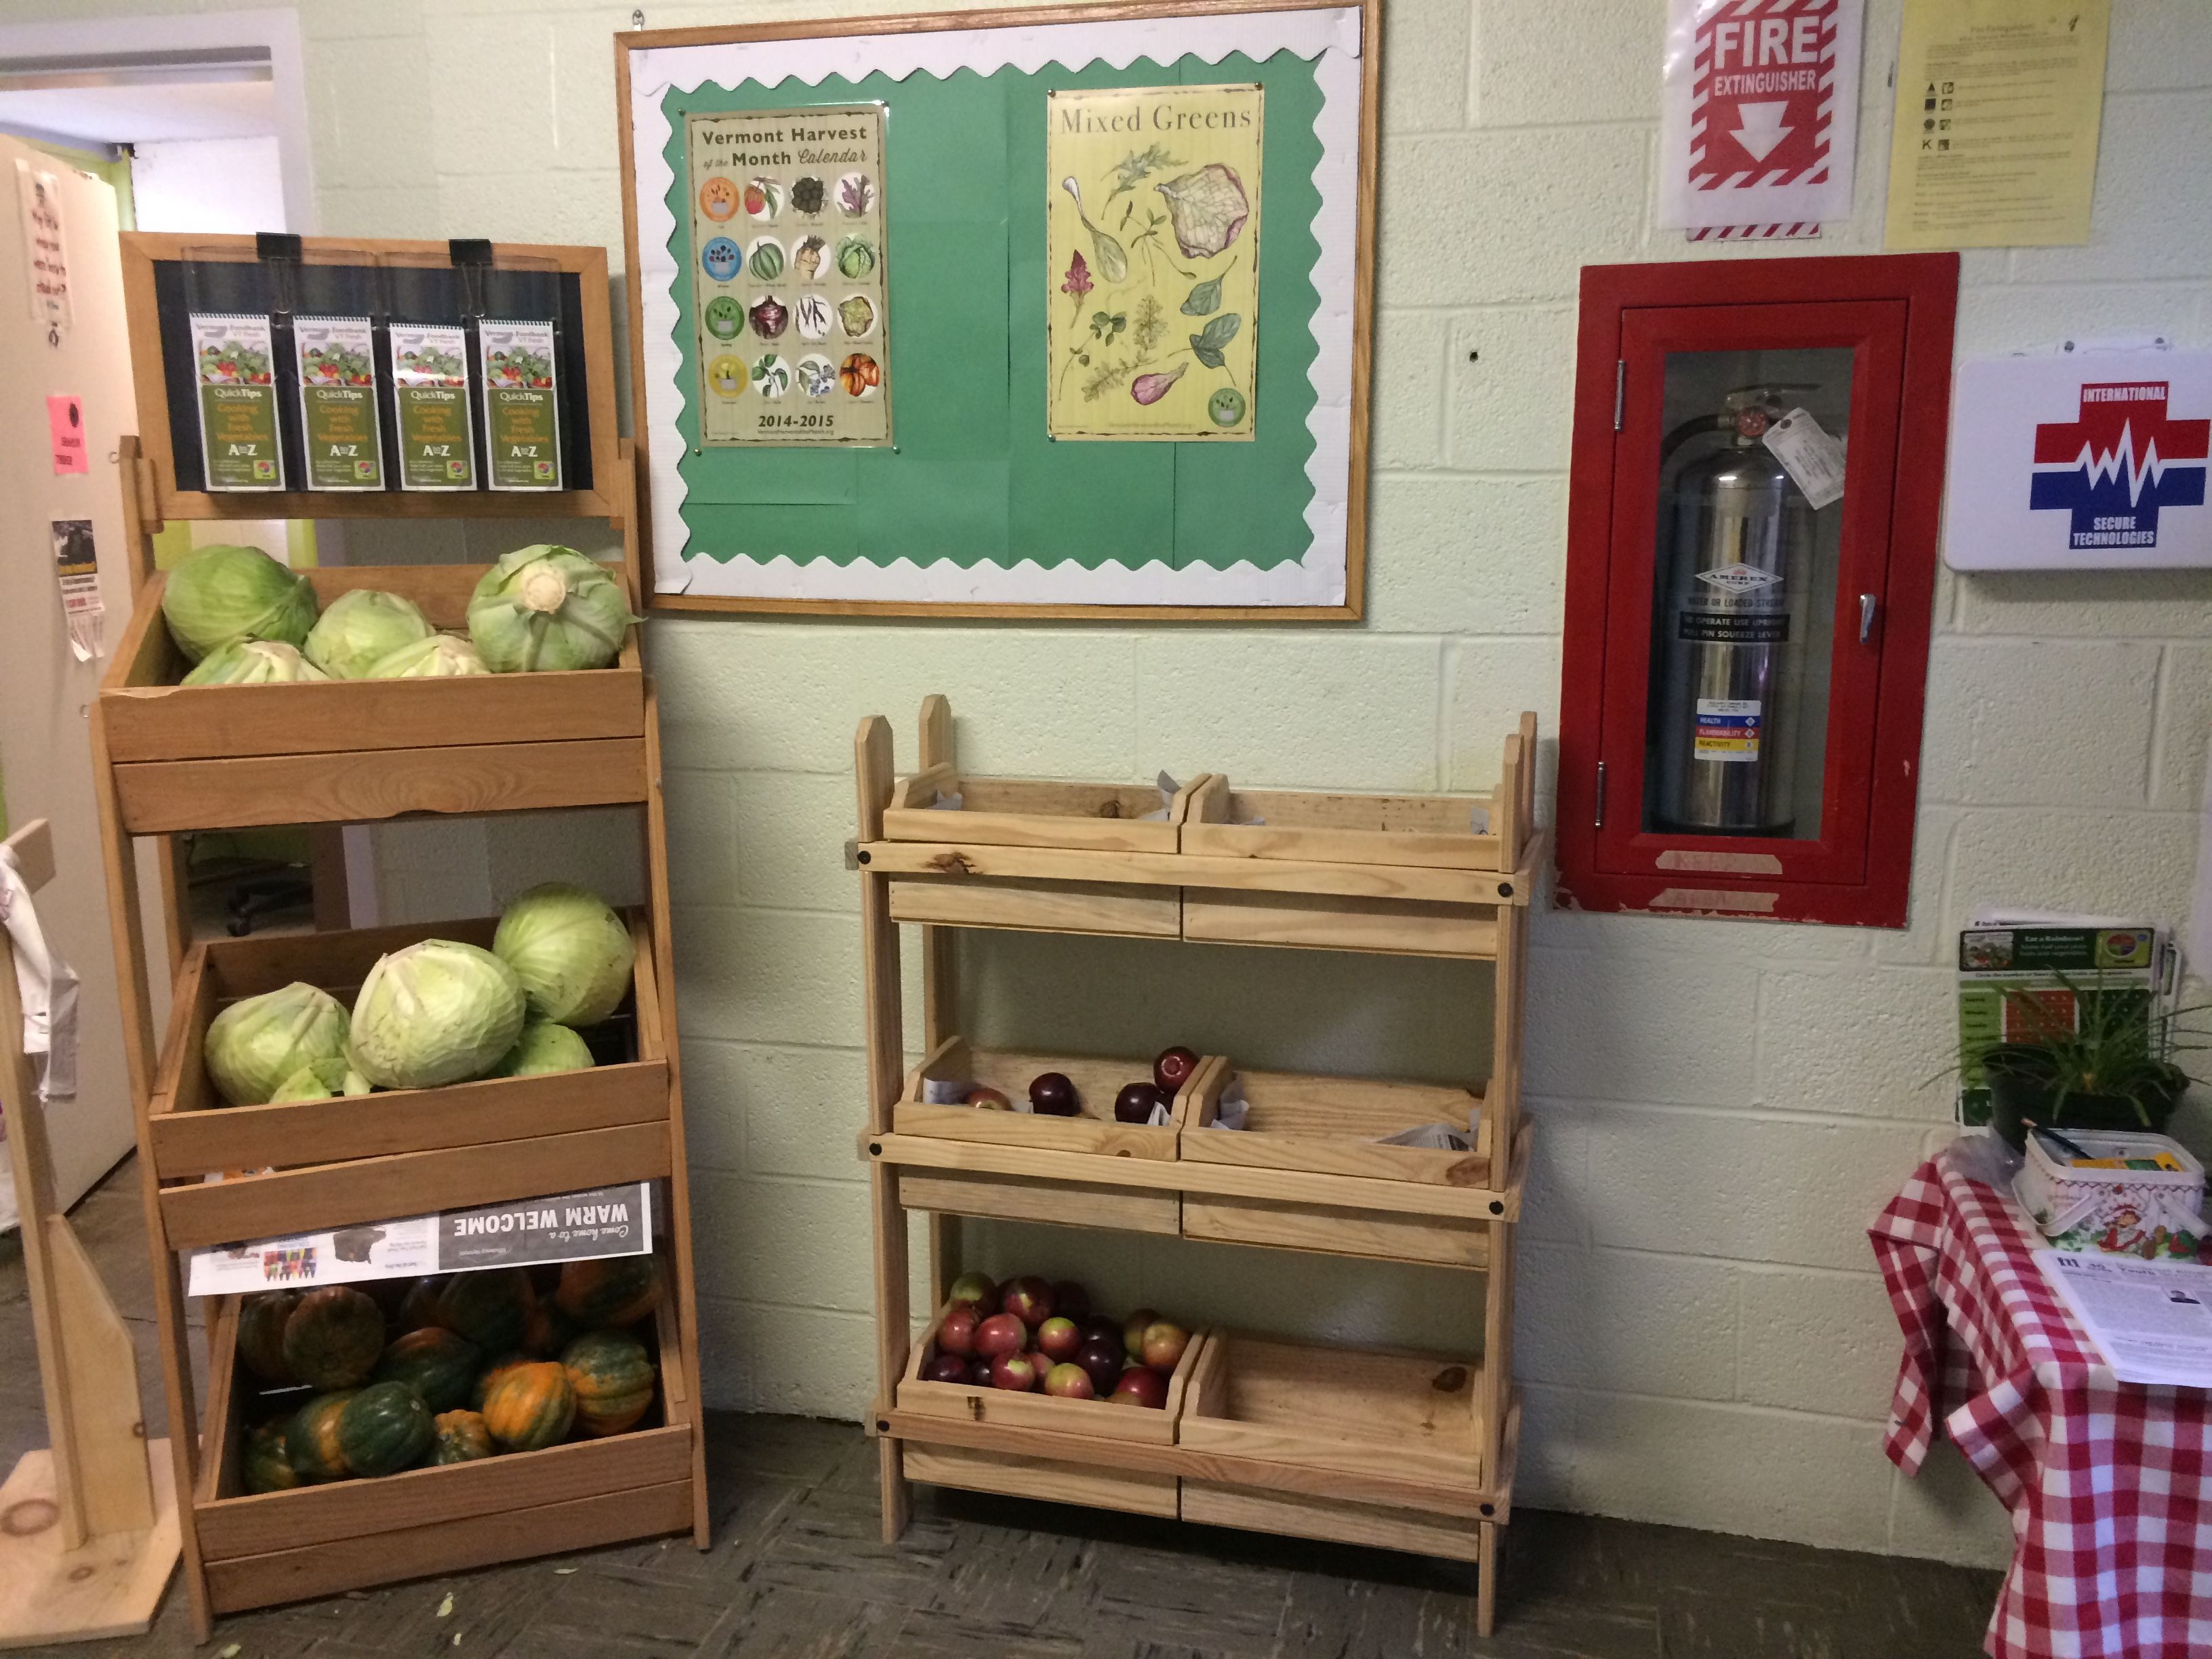 Pin by michelle wallace on produce display ideas pinterest produce displays display ideas shelf shelves shelving units shelving workwithnaturefo